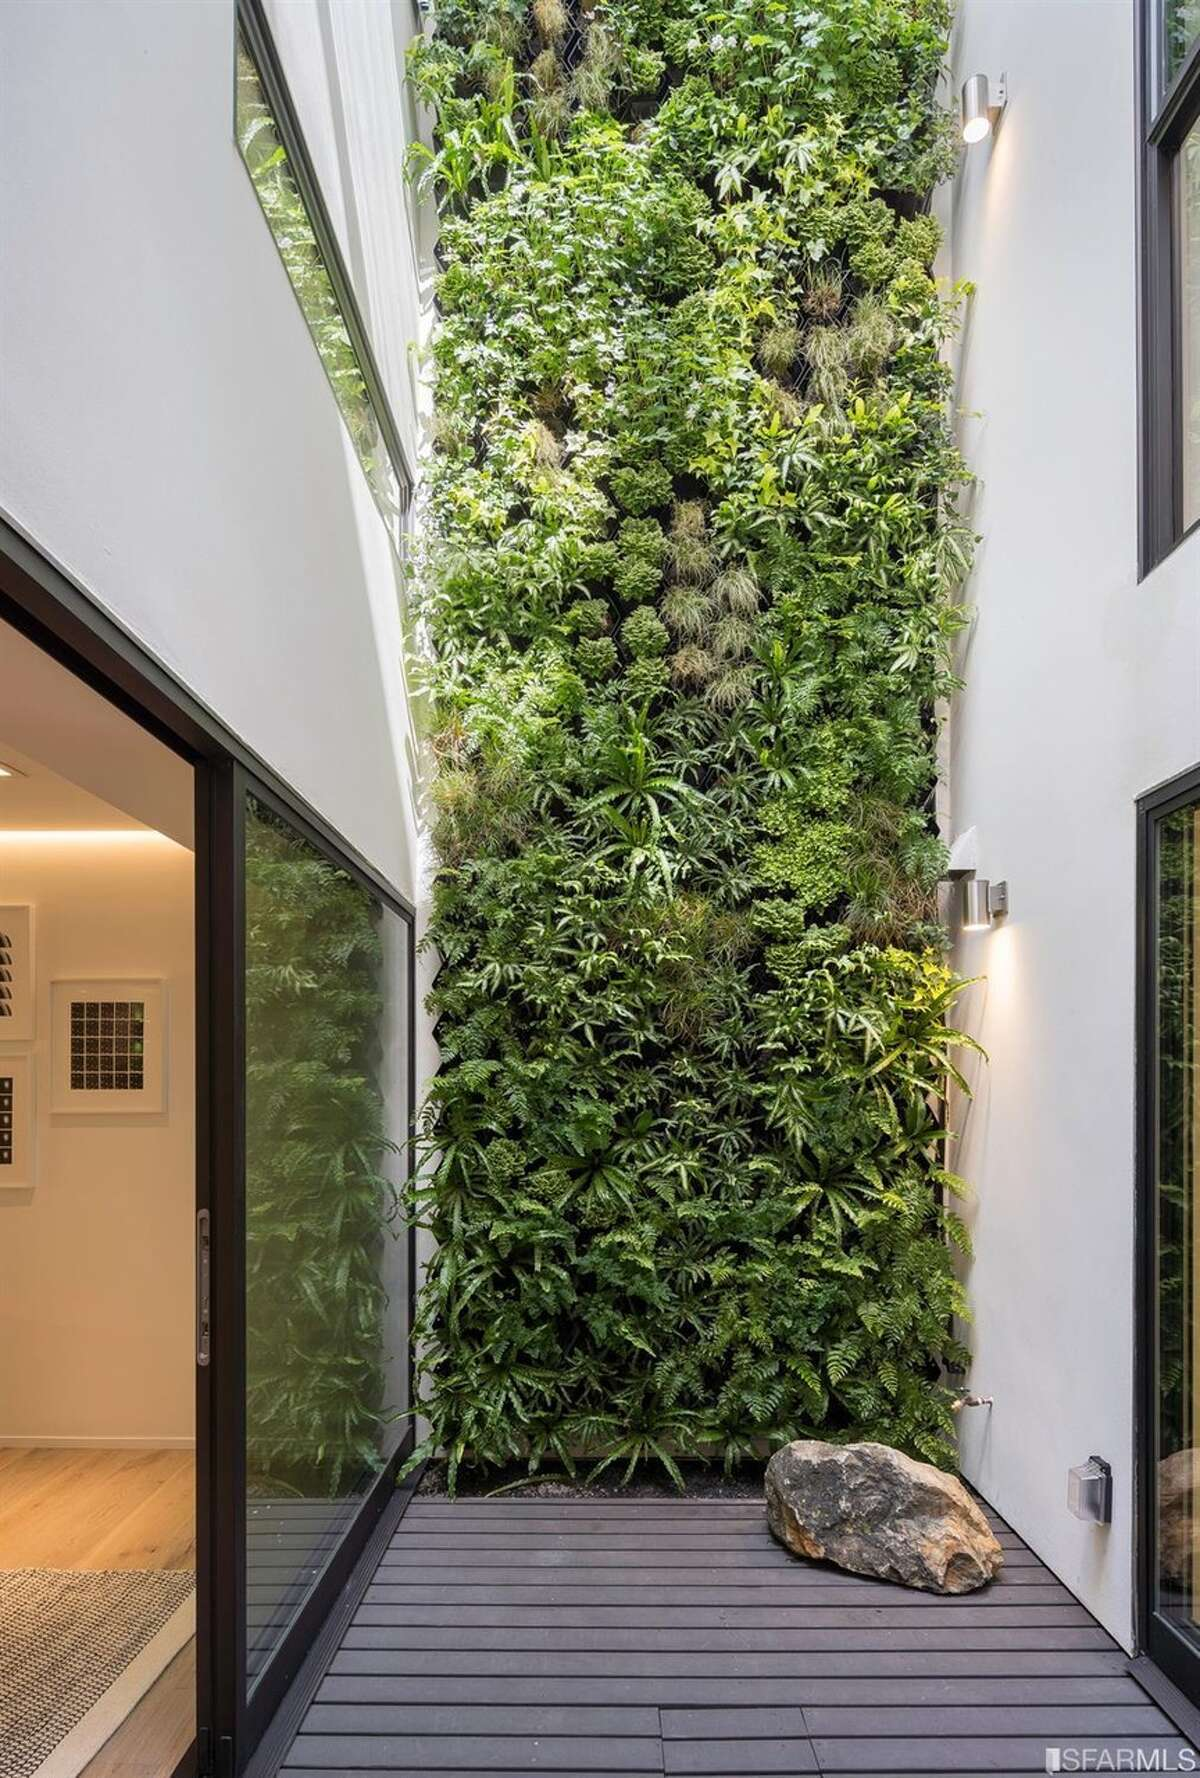 The centerpiece of the home is the three-floor atrium with living wall.